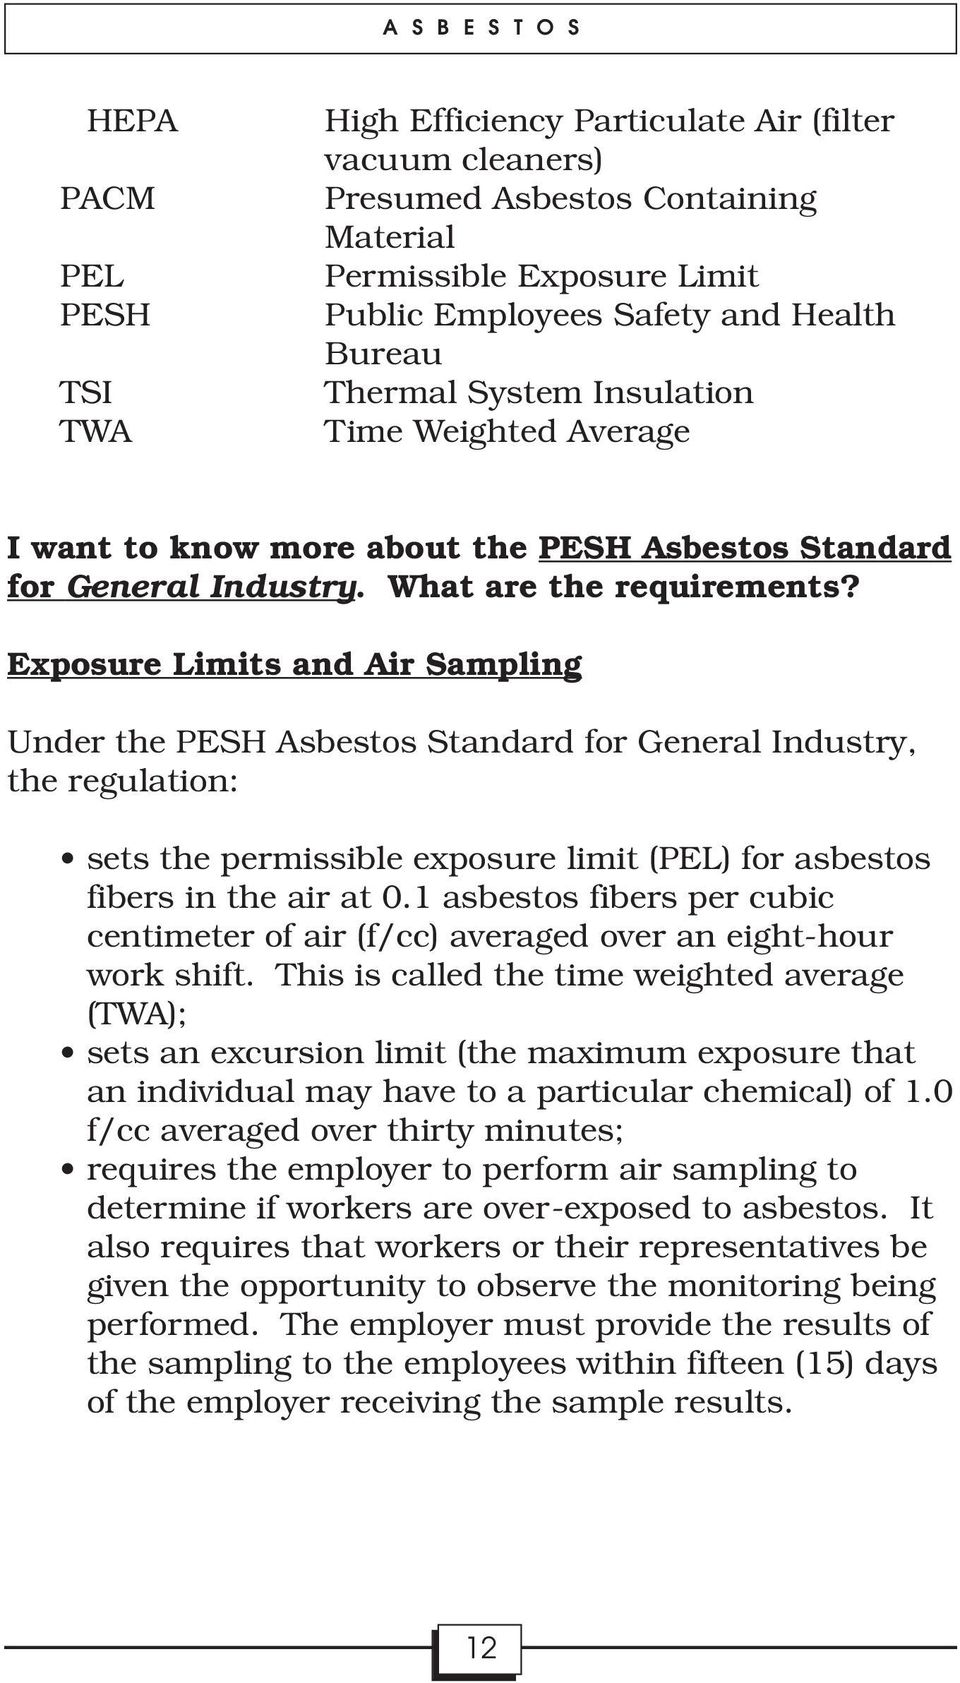 Exposure Limits and Air Sampling Under the PESH Asbestos Standard for General Industry, the regulation: sets the permissible exposure limit (PEL) for asbestos fibers in the air at 0.